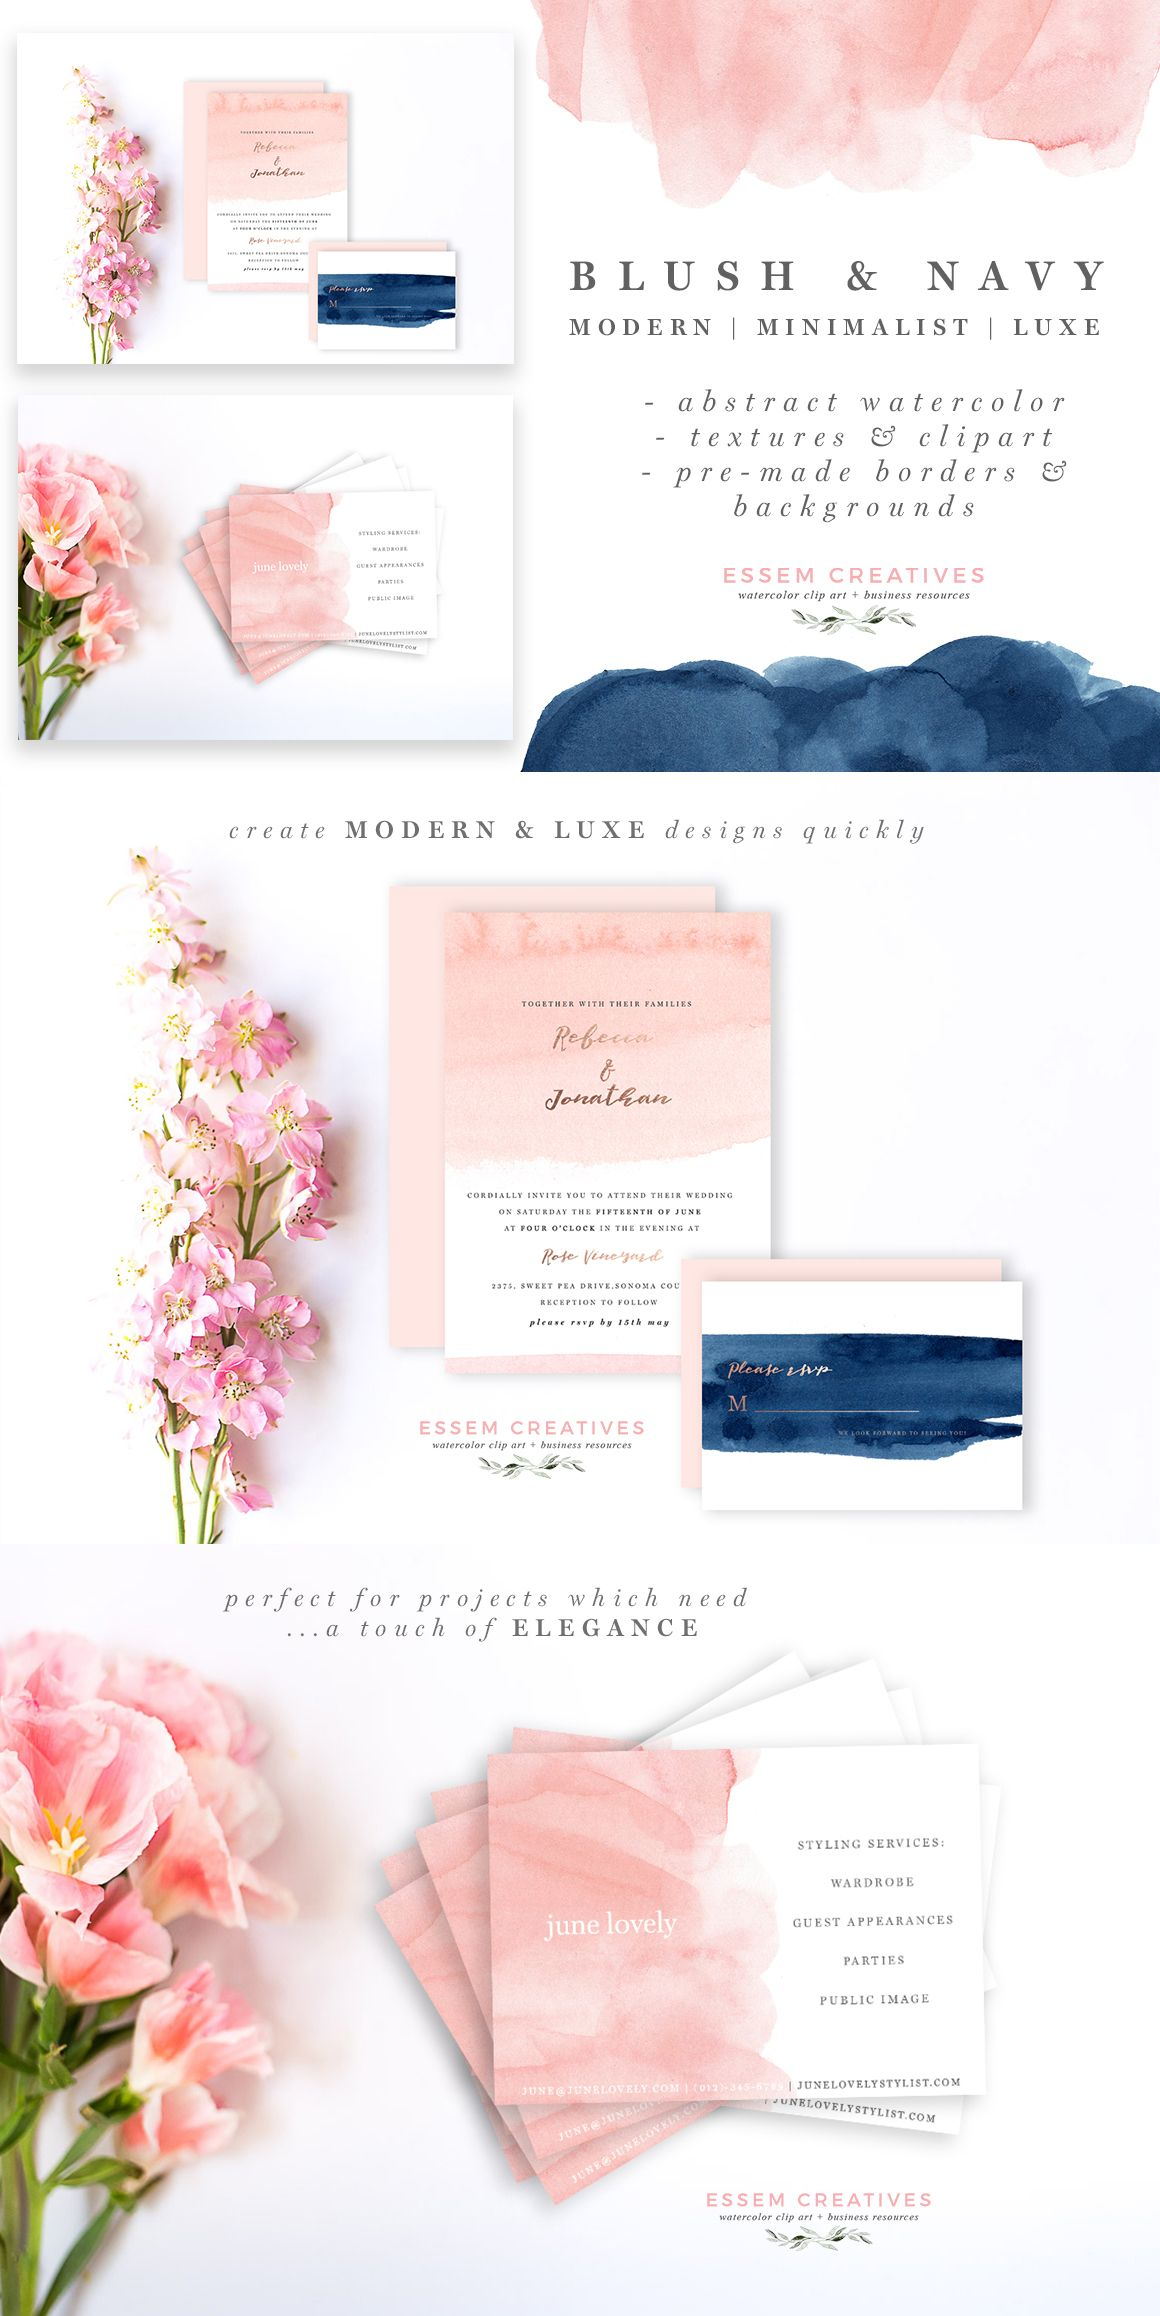 Watercolor Wedding Invitations Blush Navy Is A Set Of Handpainted Clipart Textures Background And Borders The Watercolors Have Been: Pea Wedding Invitations Cut Out At Websimilar.org